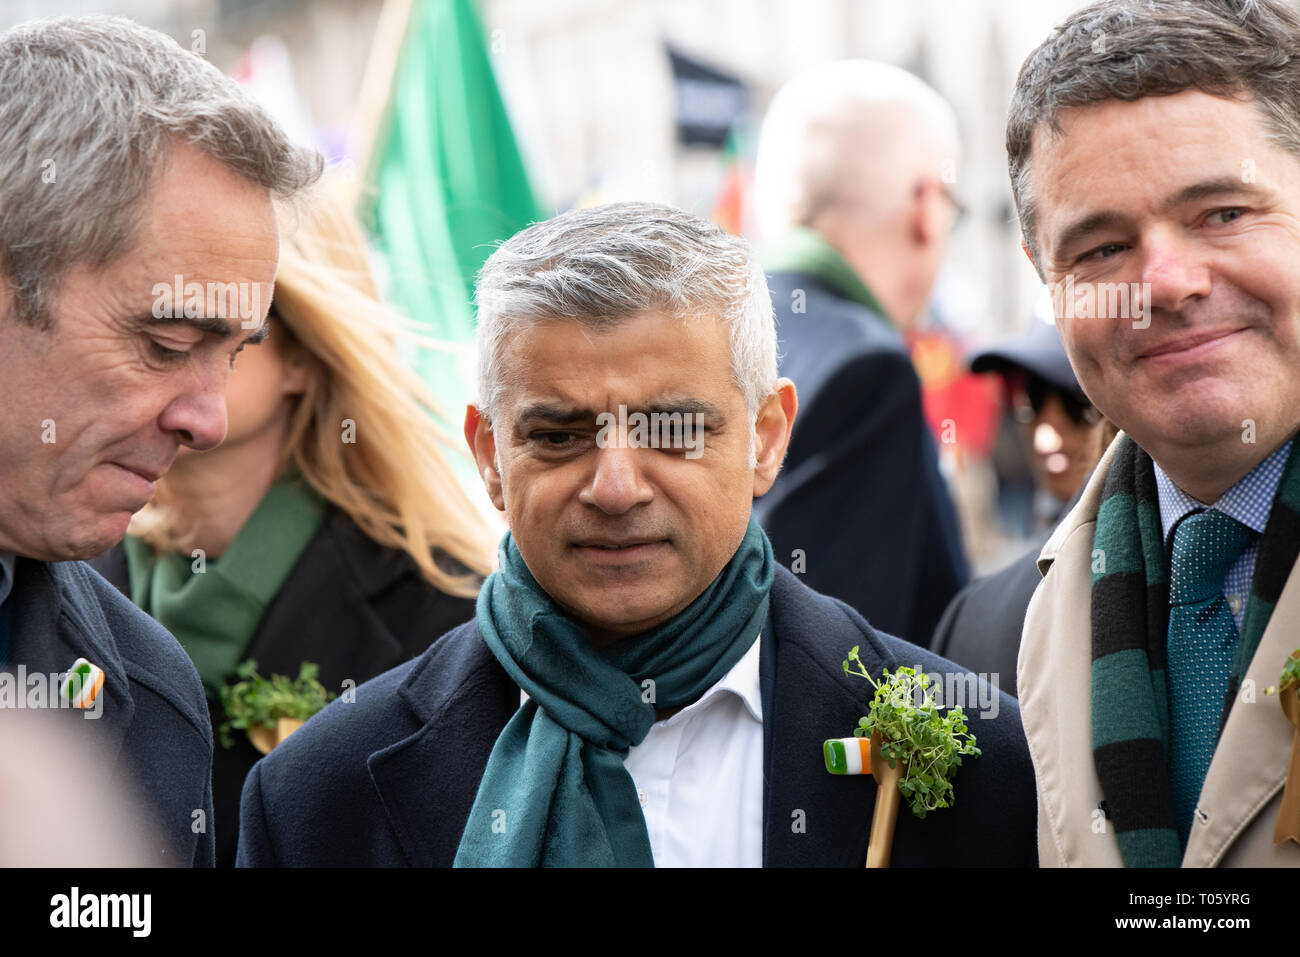 London, UK, 17 March 2019  The London St Patrick's Day Festival, now in its 17th year, attracts more than 125,000 people to events across London and to the parade and festival in central London and Trafalgar Square. This year's theme is #LondonIsOpen. Leading the parade were London Mayor Sadiq Khan and actor James Nesbitt, and Irish Finance Minister Paschal Luke Donohoe.  Credit: Ilyas Ayub/ Alamy Live News - Stock Image